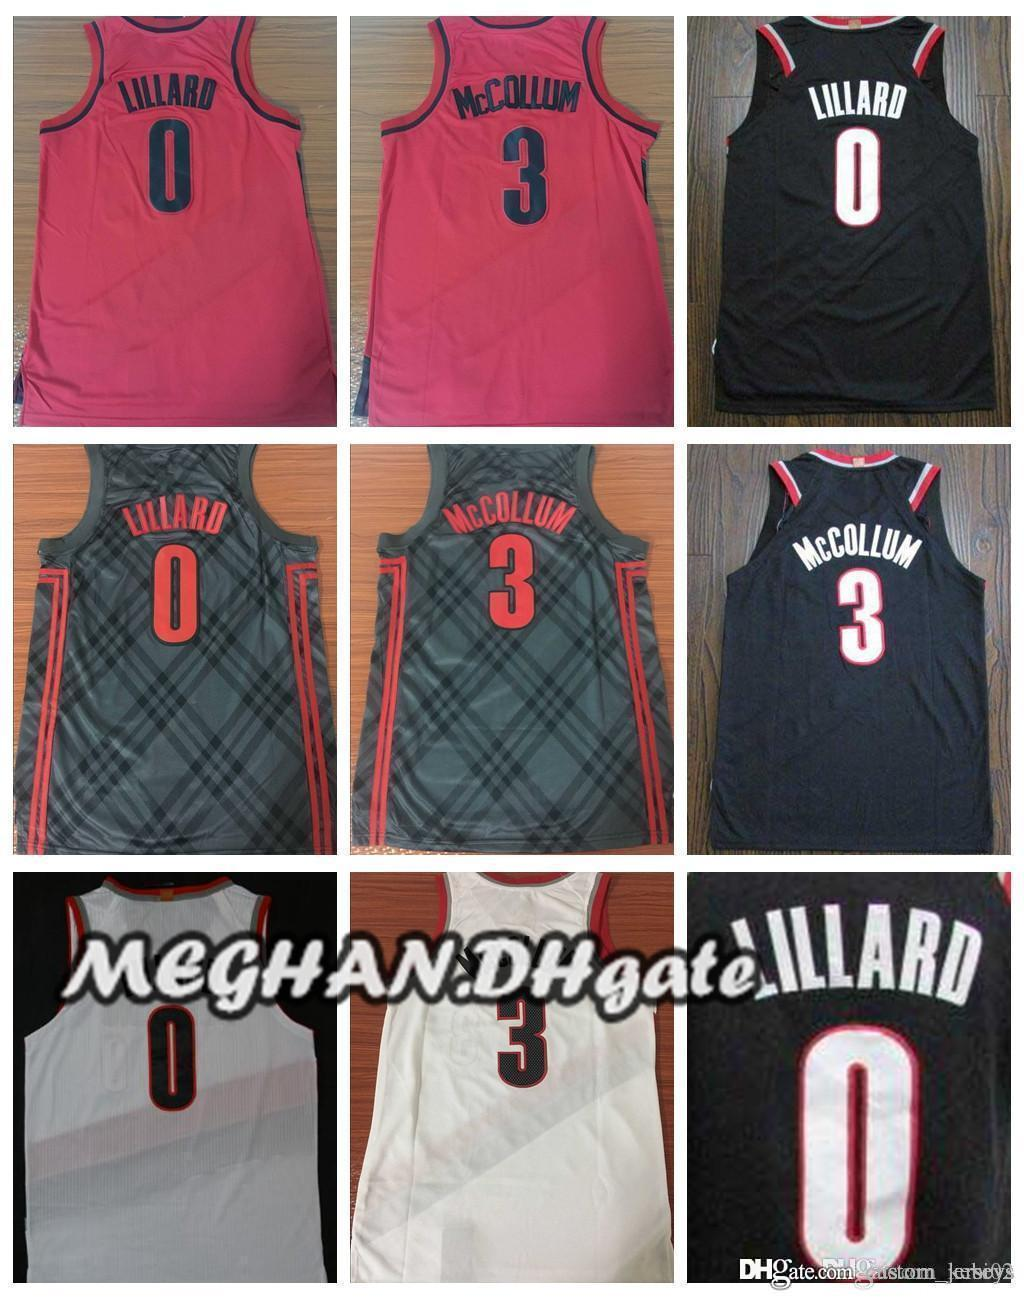 7e79eab62a6 ... czech 2018 trail blazers 2018 0 damian lillard city jerseys embroidery  splice 3 cj mccollum all